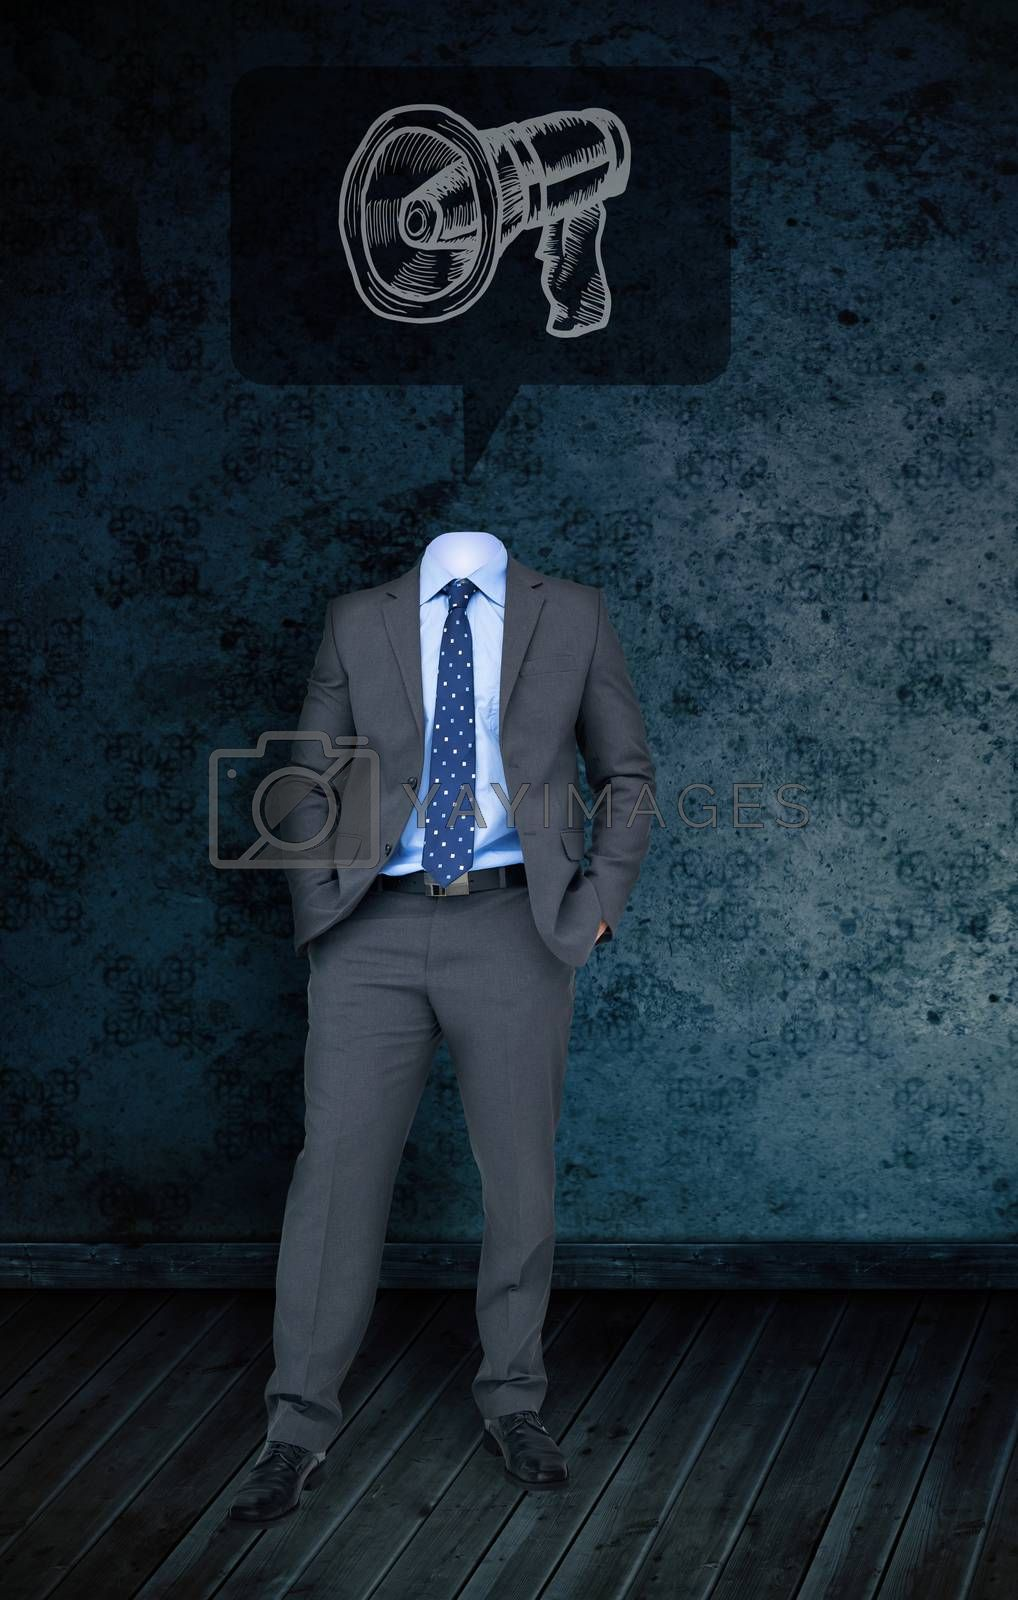 Composite image of headless businessman with megaphone doodle against dark grimy room